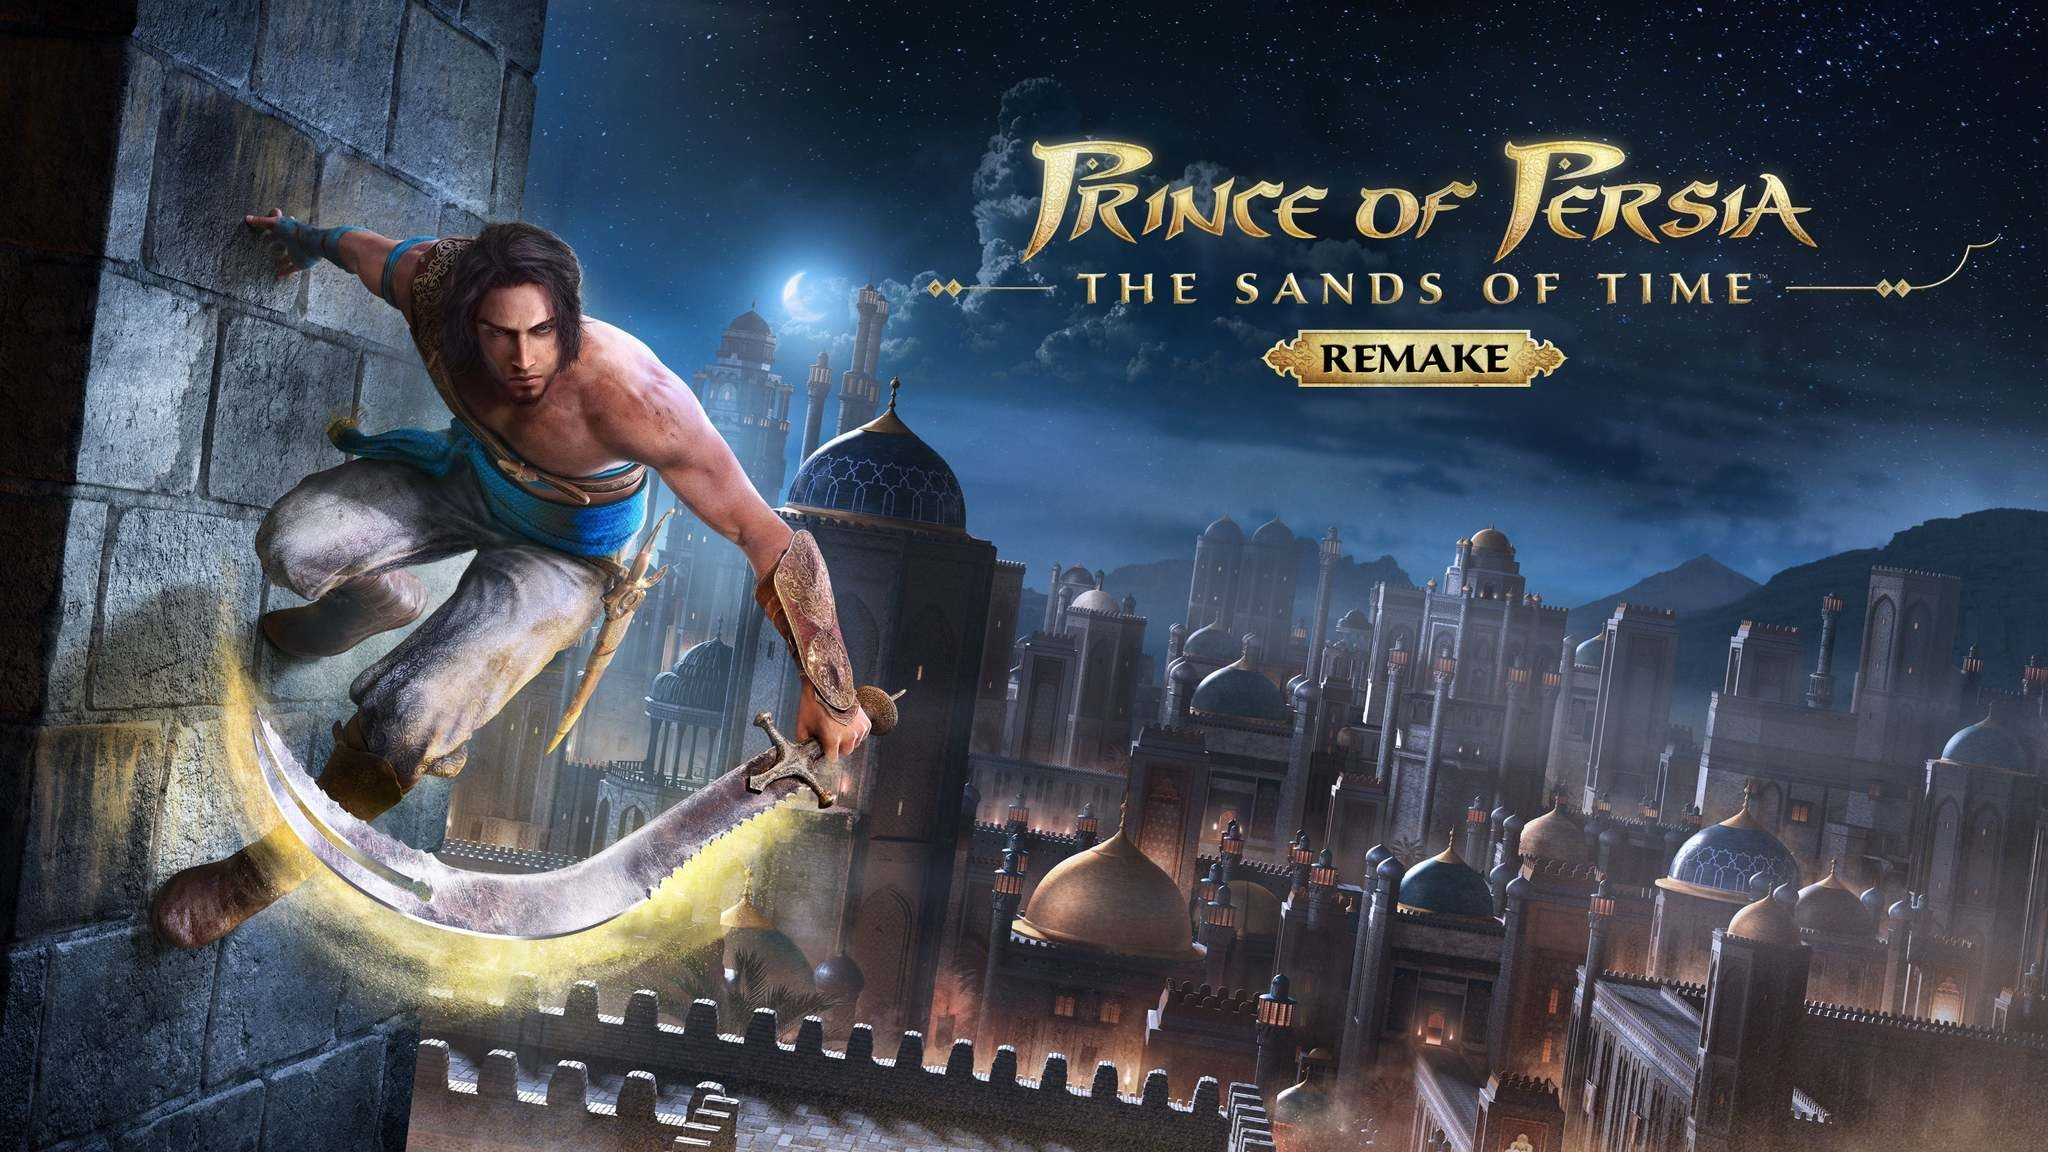 PRİNCE OF PERSİA: THE SANDS OF TİME REMAKE GELİYOR